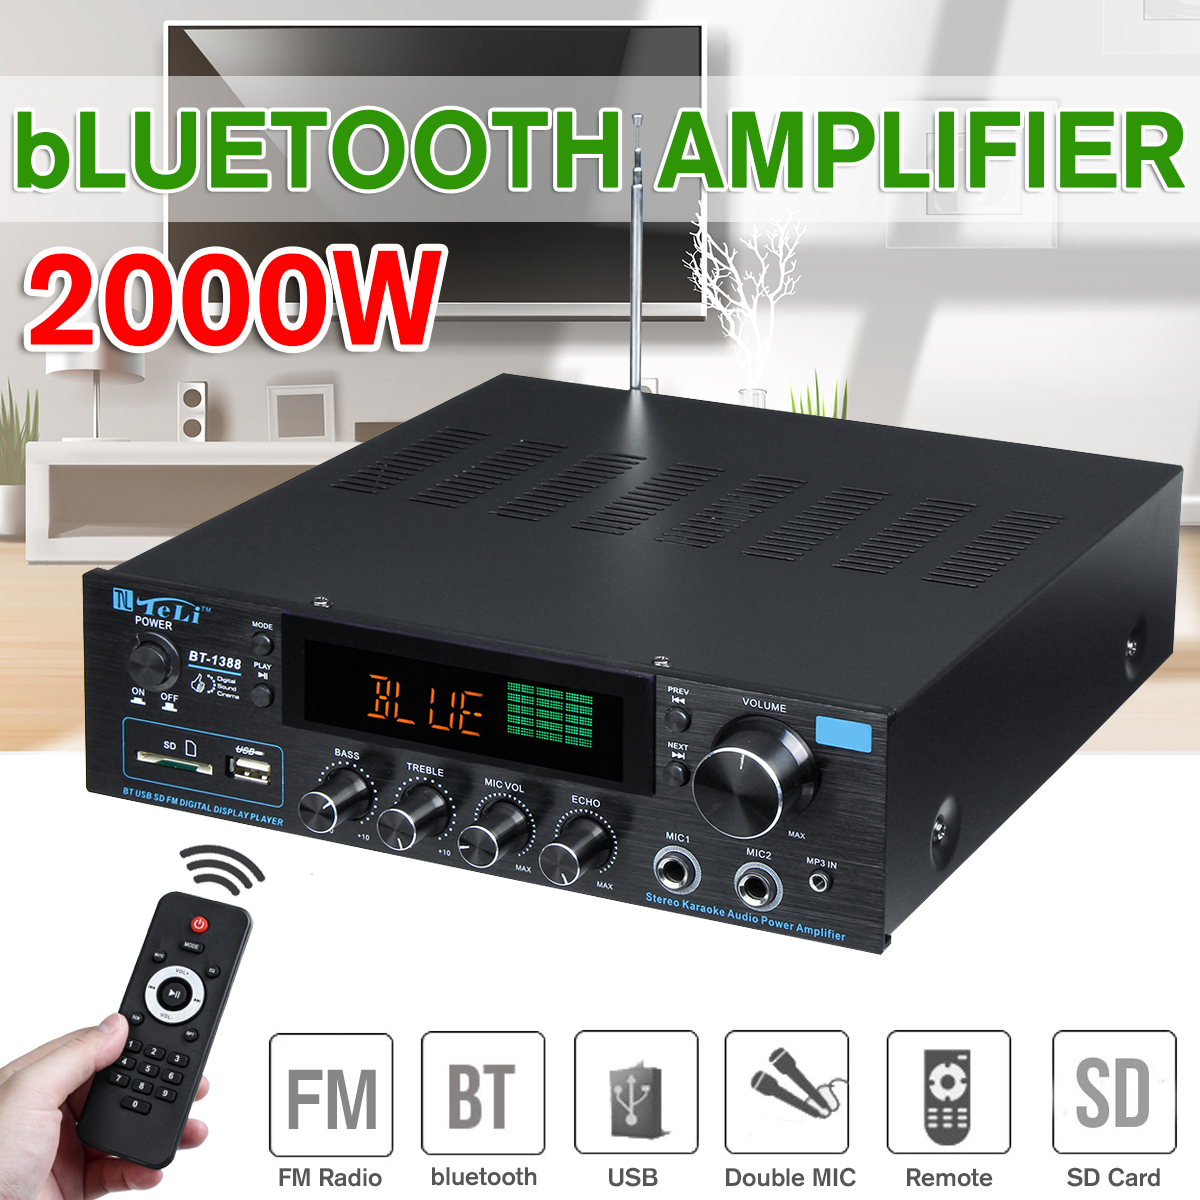 110-240V 2000W Wireless Digital Audio Amplifier 16ohm Bluetooth Stereo Karaoke Amplifier 2MIC Input FM RC Home Theater Amplifier